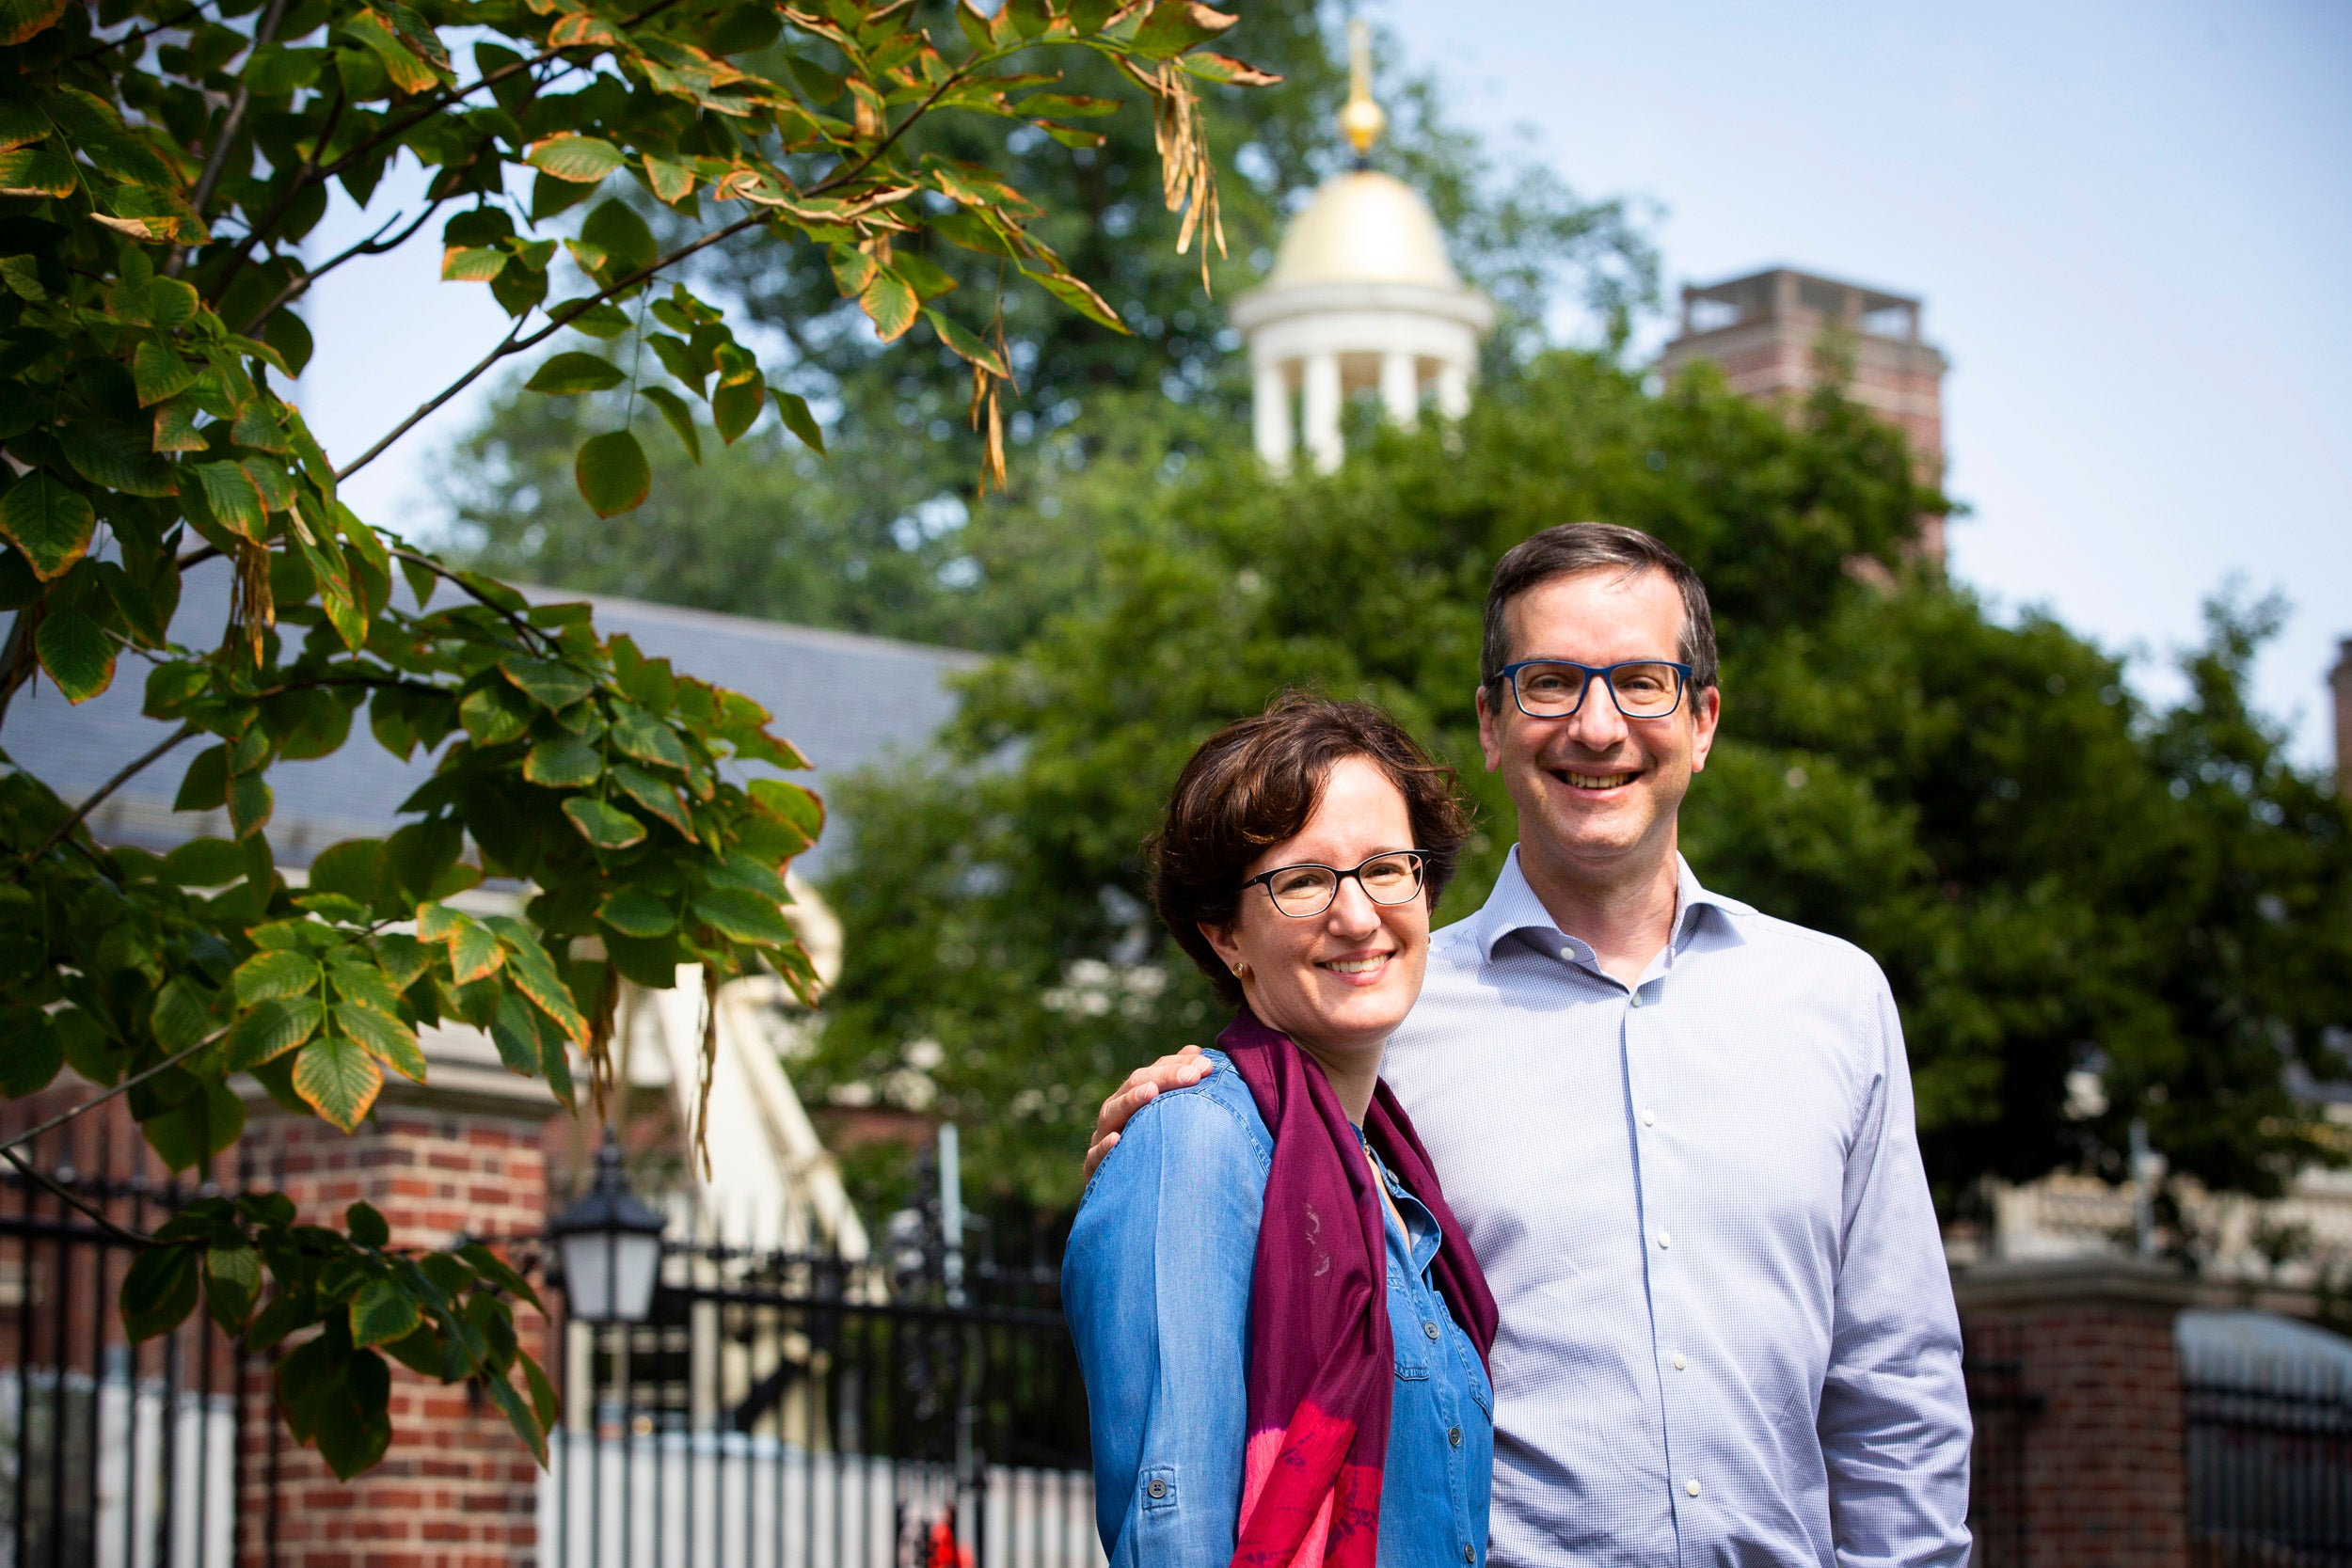 Nina Zipser, dean for faculty affairs and planning, and David Laibson, Robert I. Goldman Professor of Economics, will be the new faculty deans of Lowell House following the 2018-19 academic year.